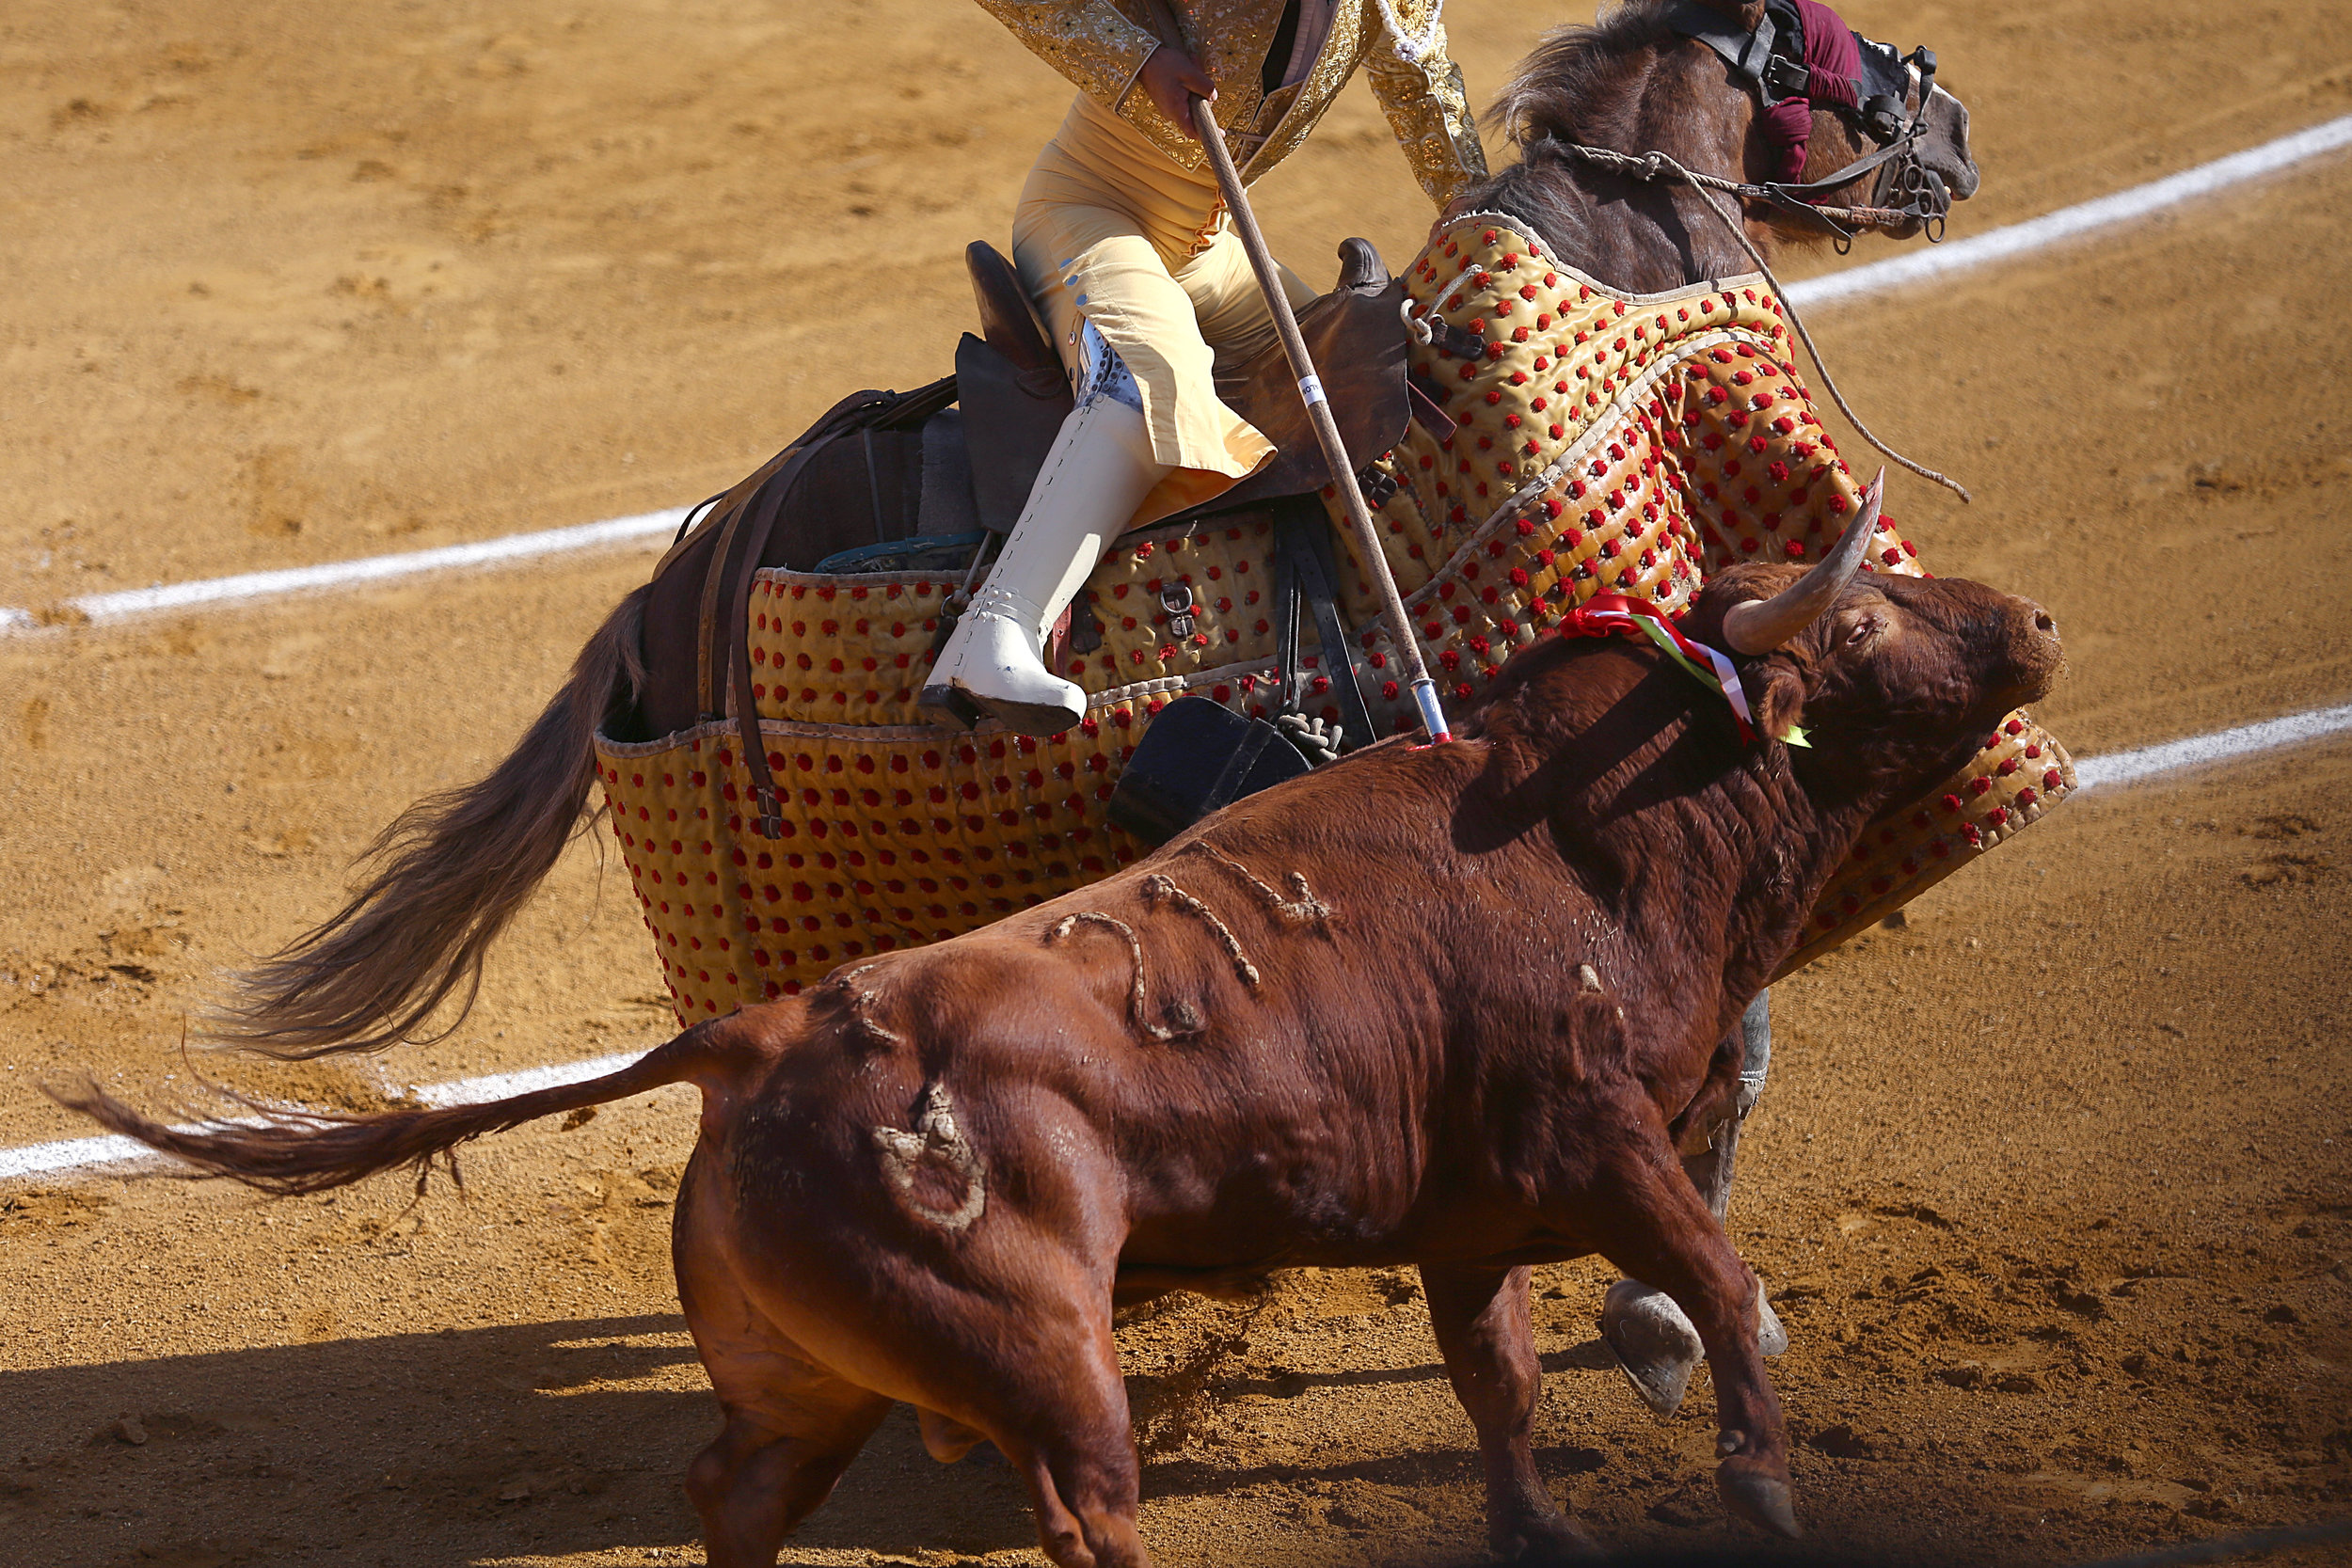 "Bull number 214 is stabbed by one of the '""picadors"" of matador Enrique Ponce's ""cuadrilla"", or team, as the bull's horn gets stuck in the horse's protective gear, during the Saint Peter de Regalado's festival in Valladolid, Spain, on May 11, 2014."